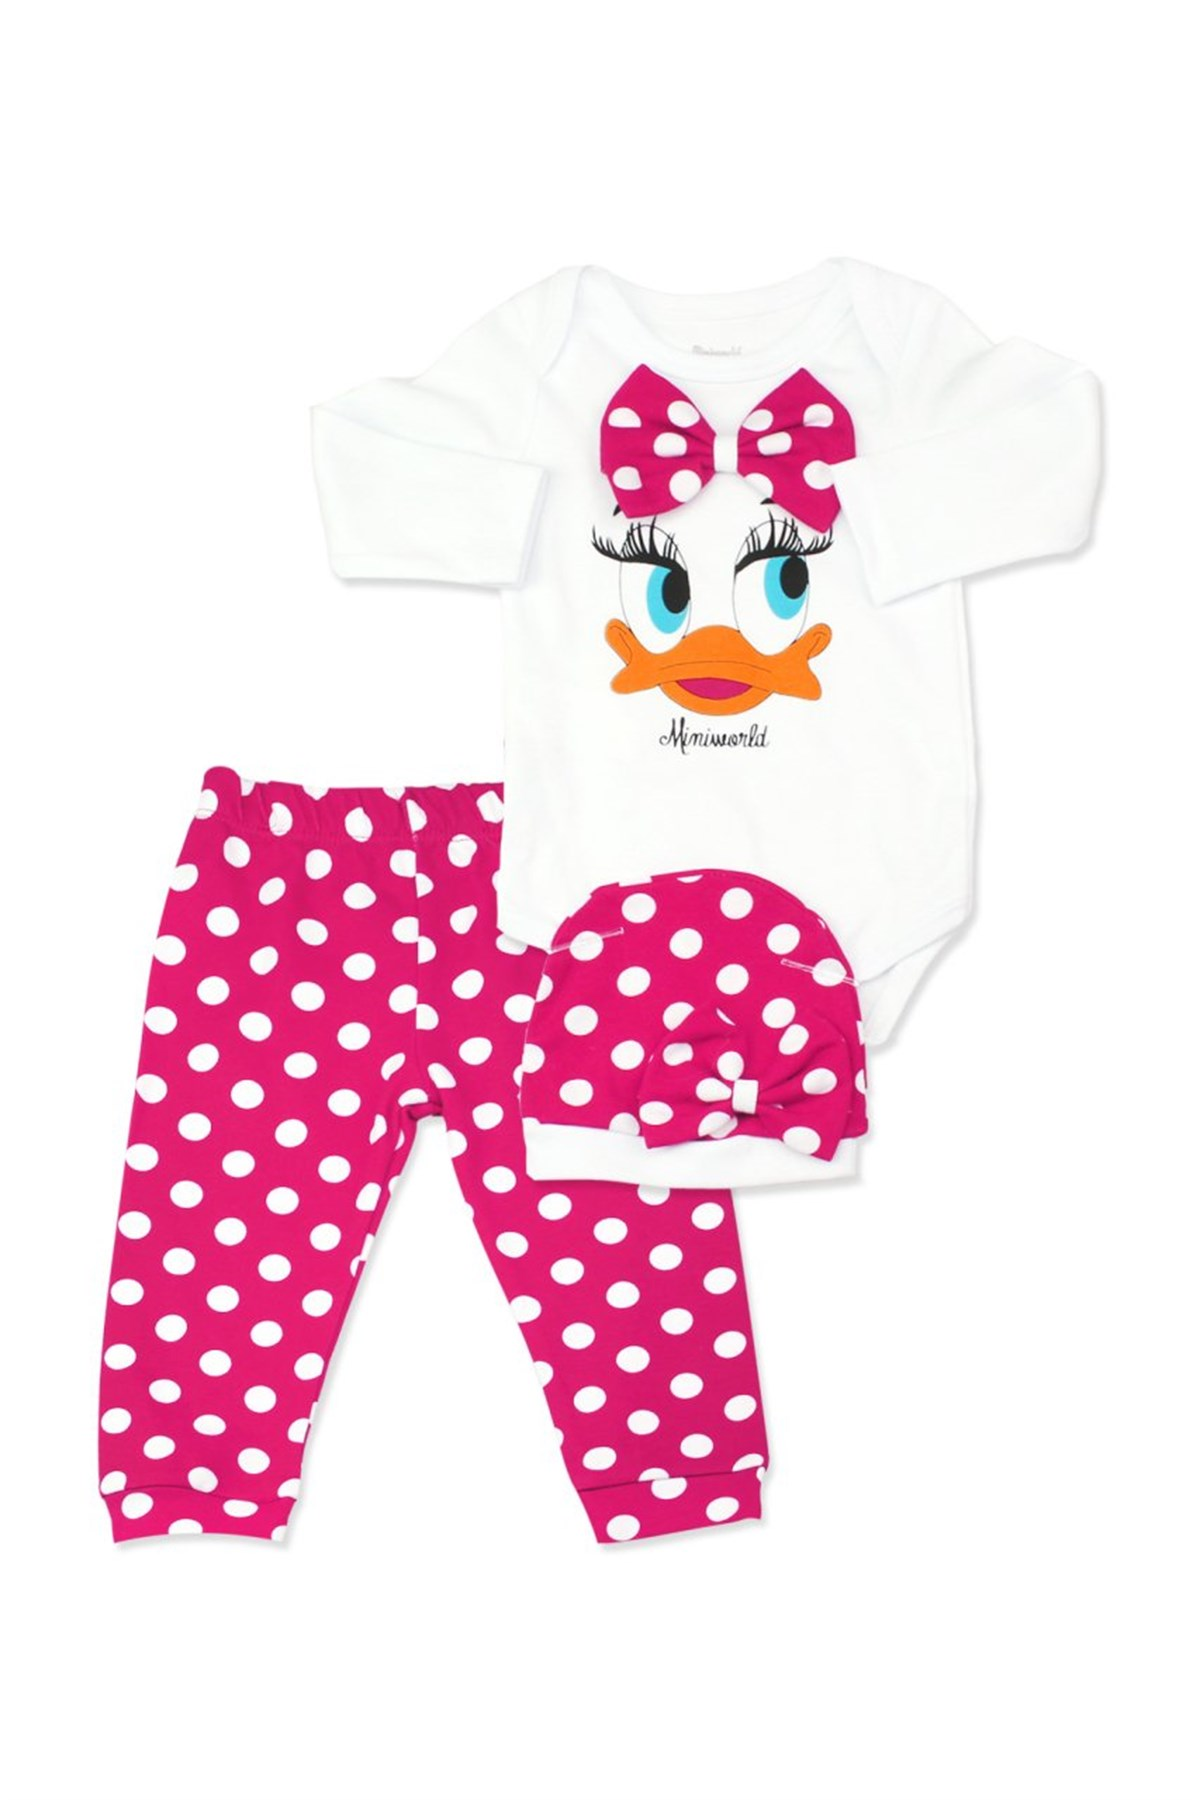 Baby Girl's Dotted Pink White 3 Pieces Outfit Set